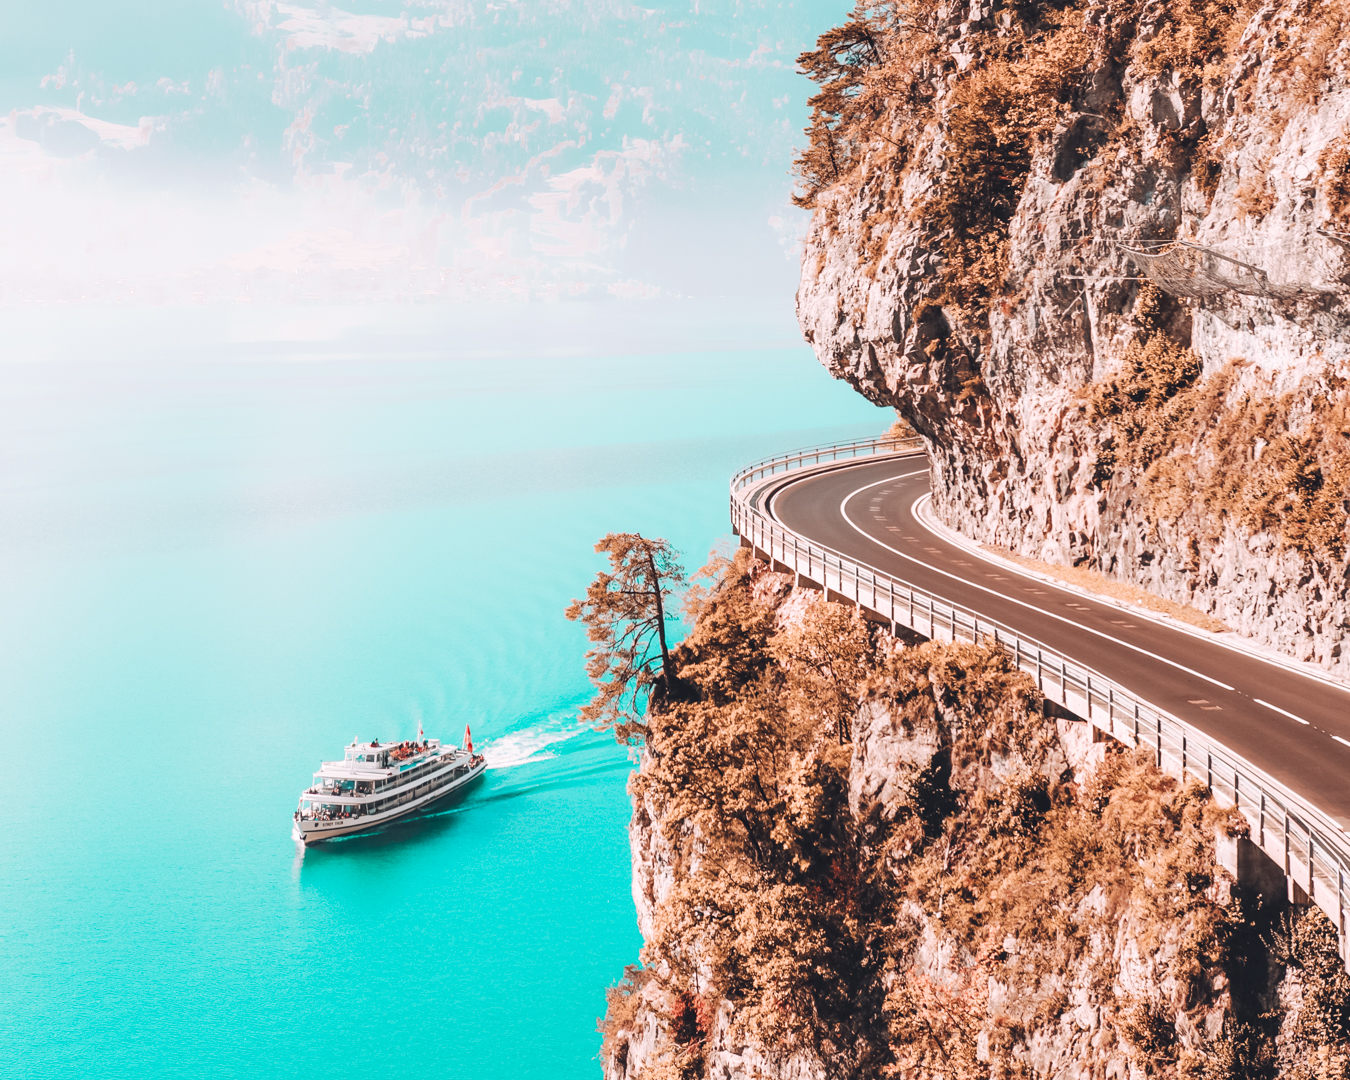 Road and lake in Switzerland